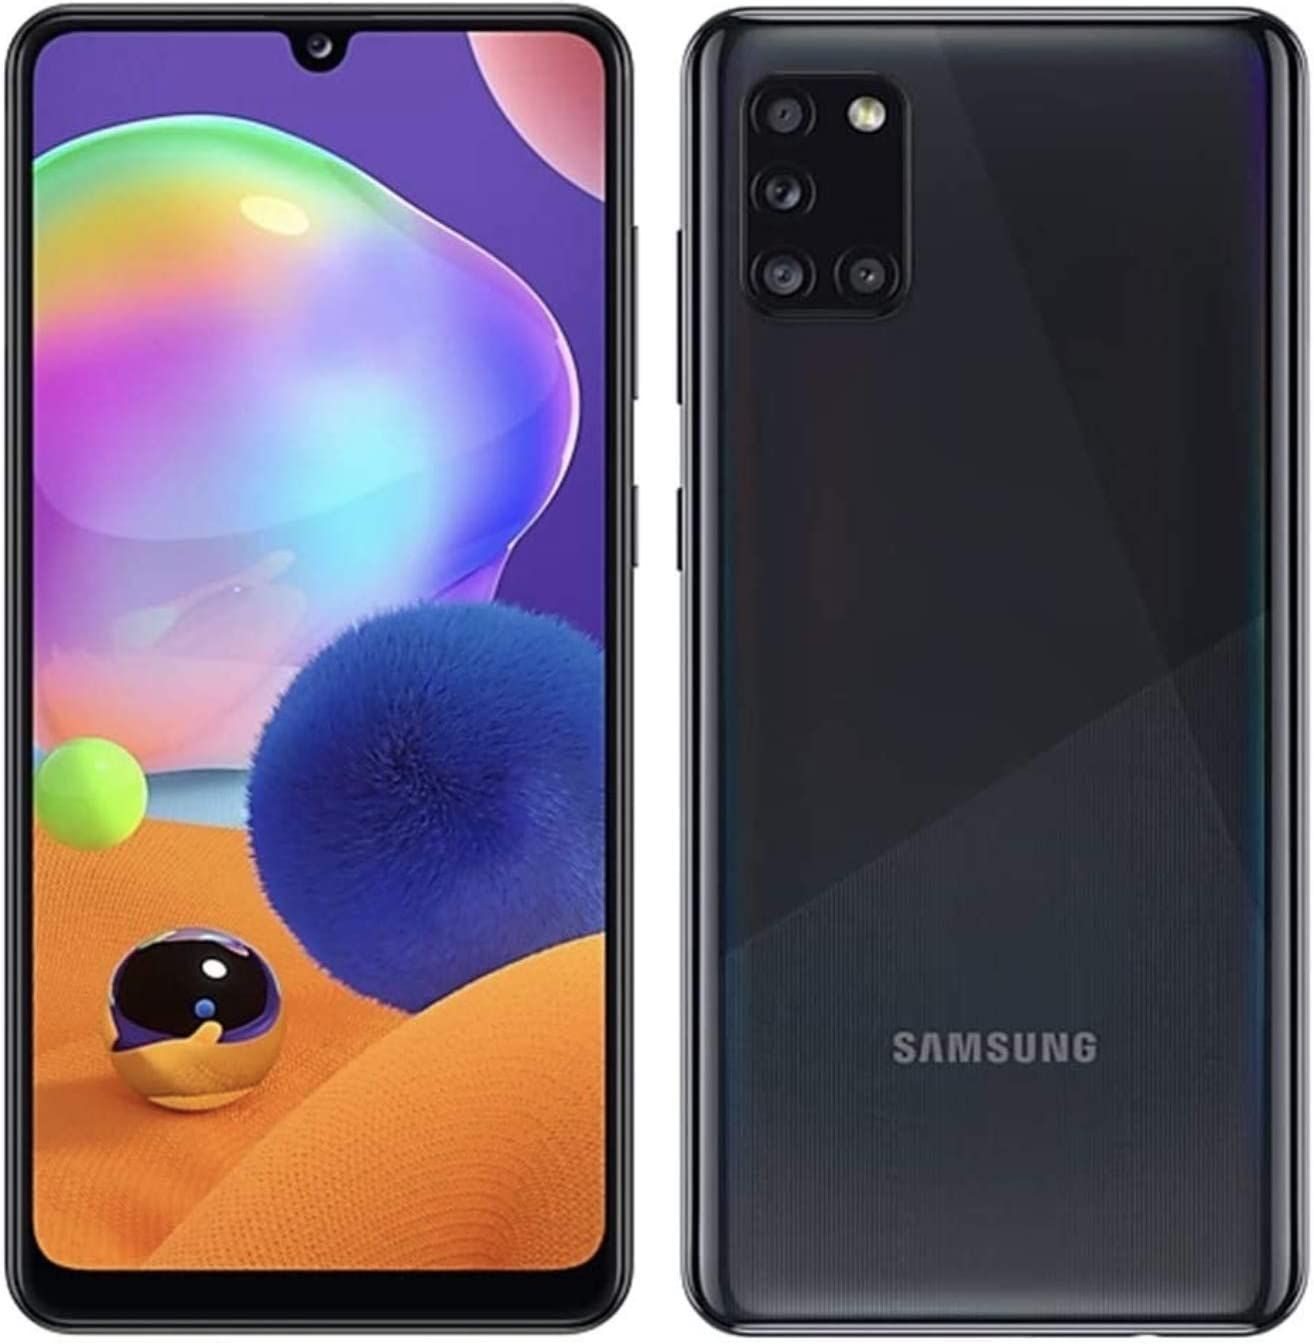 Samsung Galaxy A31-64GB / 4GB - A315G/DSL Unlocked Dual Sim Phone w/Quad Camera 48MP+8MP+5MP+5MP GSM International Version (Prism Crush Black)